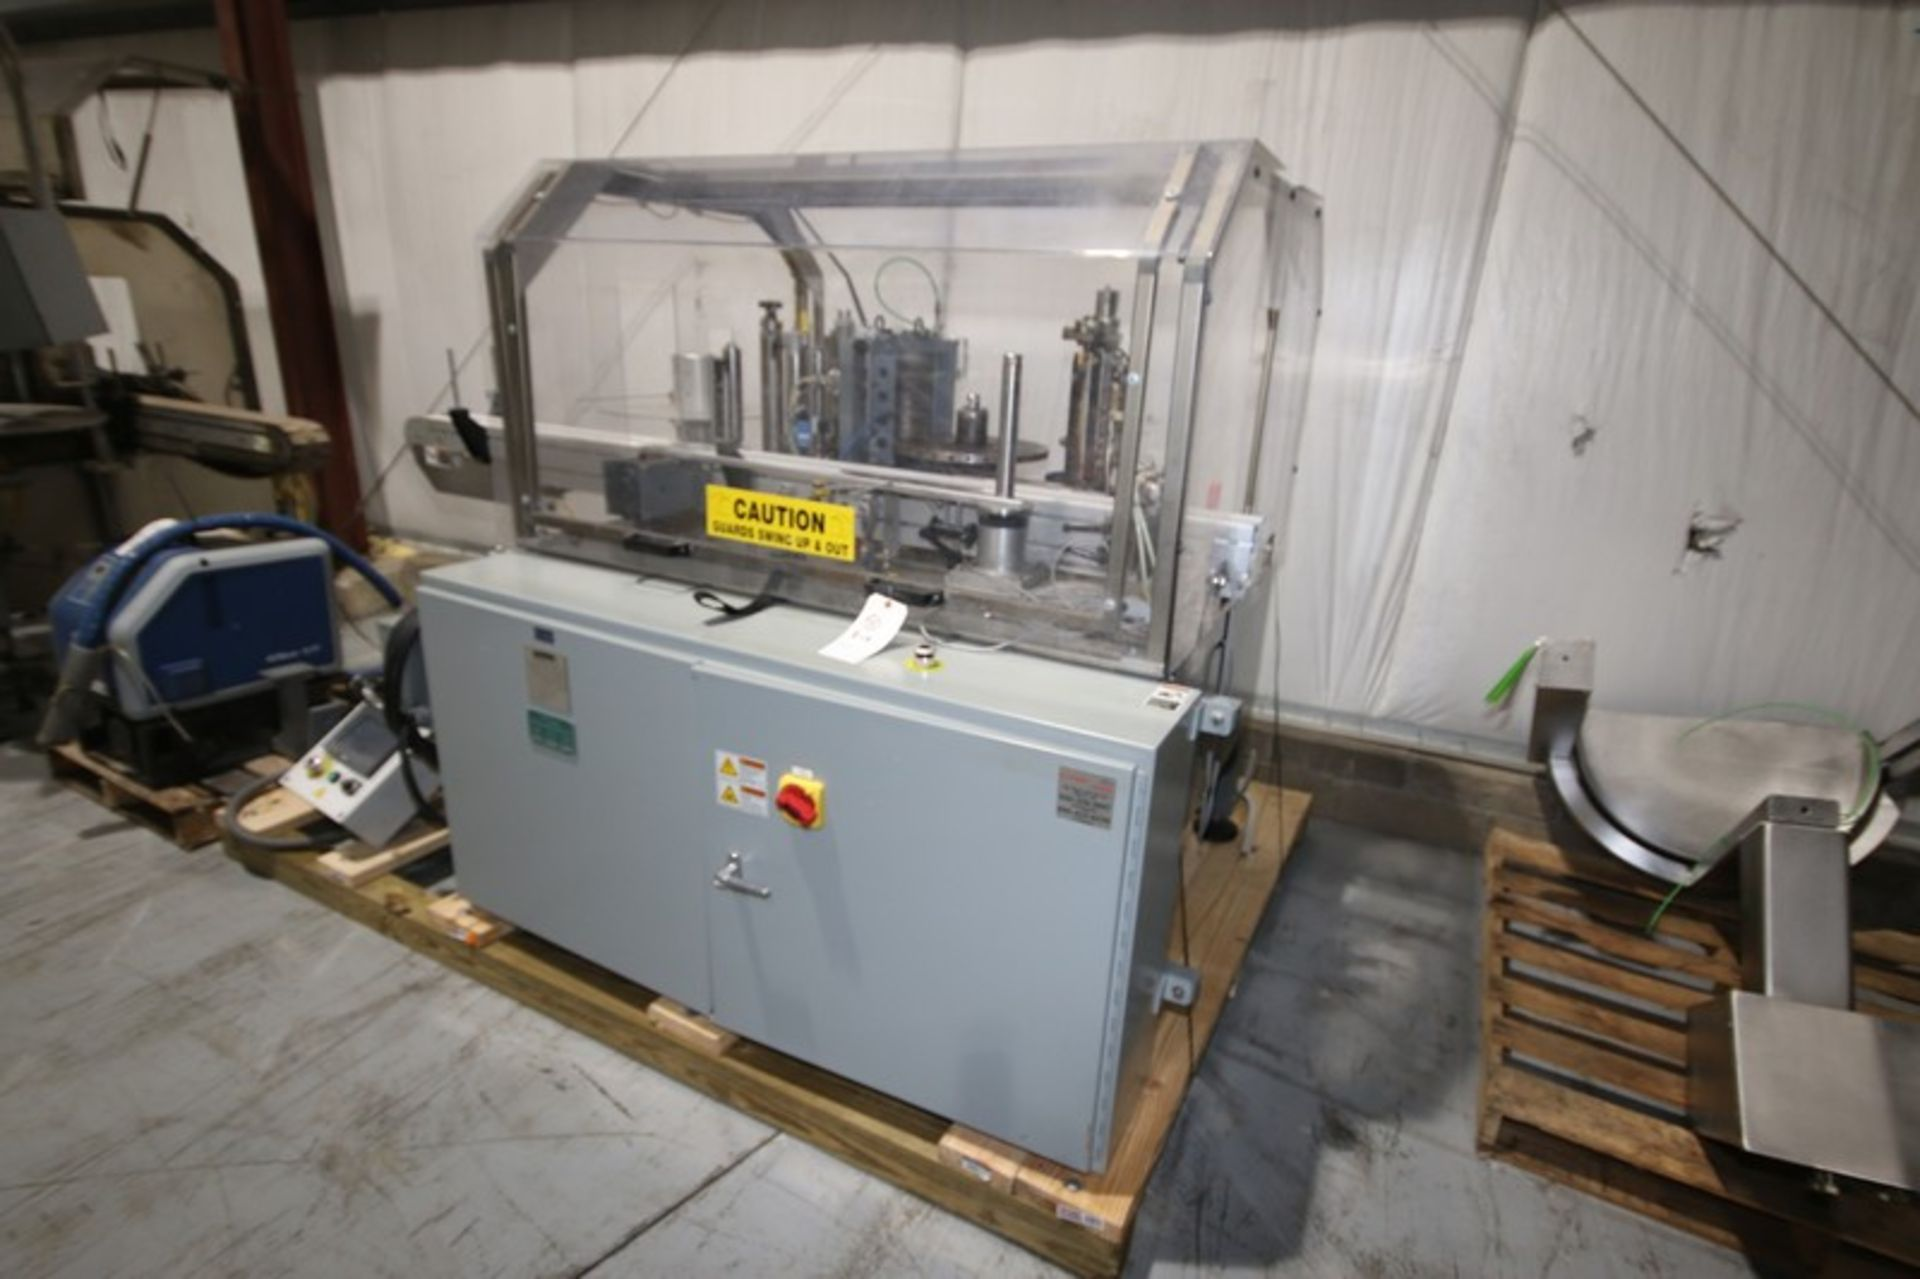 Lot 12 - 2011 Trine Labeler, M/N 4400, S/N MSN07084 18,500.00, with PLC Controls, with Allen Bradley